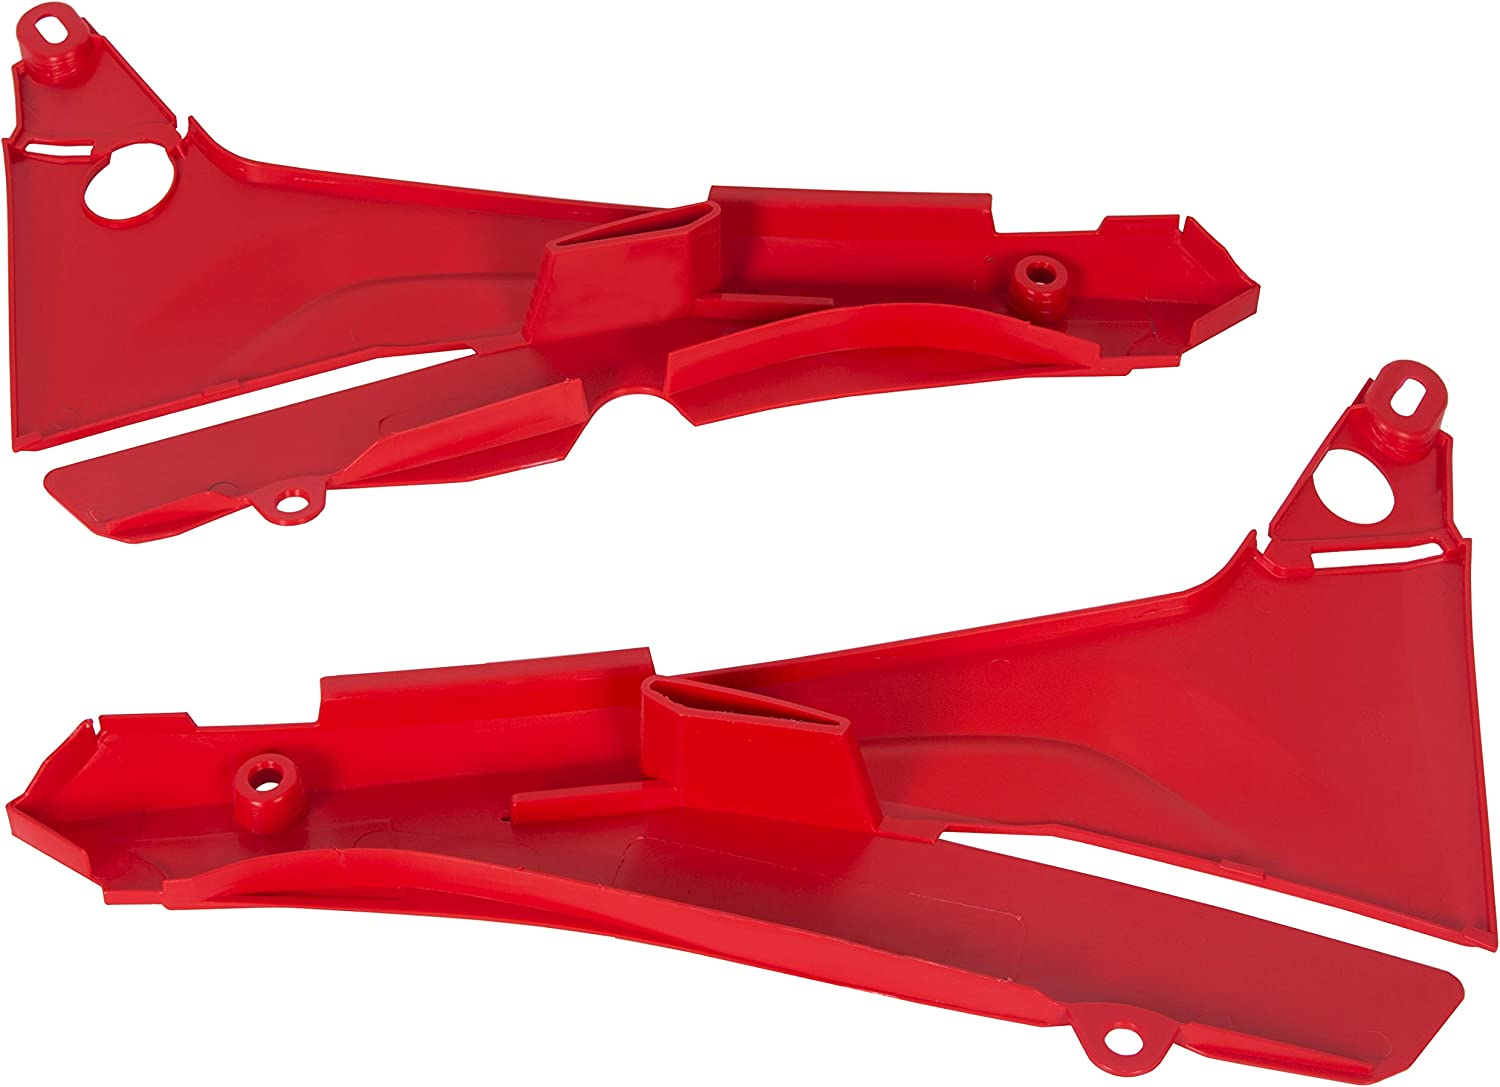 Restyle Plastic Kit Bodywork Set New Style Red White Fairing Compatible with Honda CR125R CR250R 2002-2007